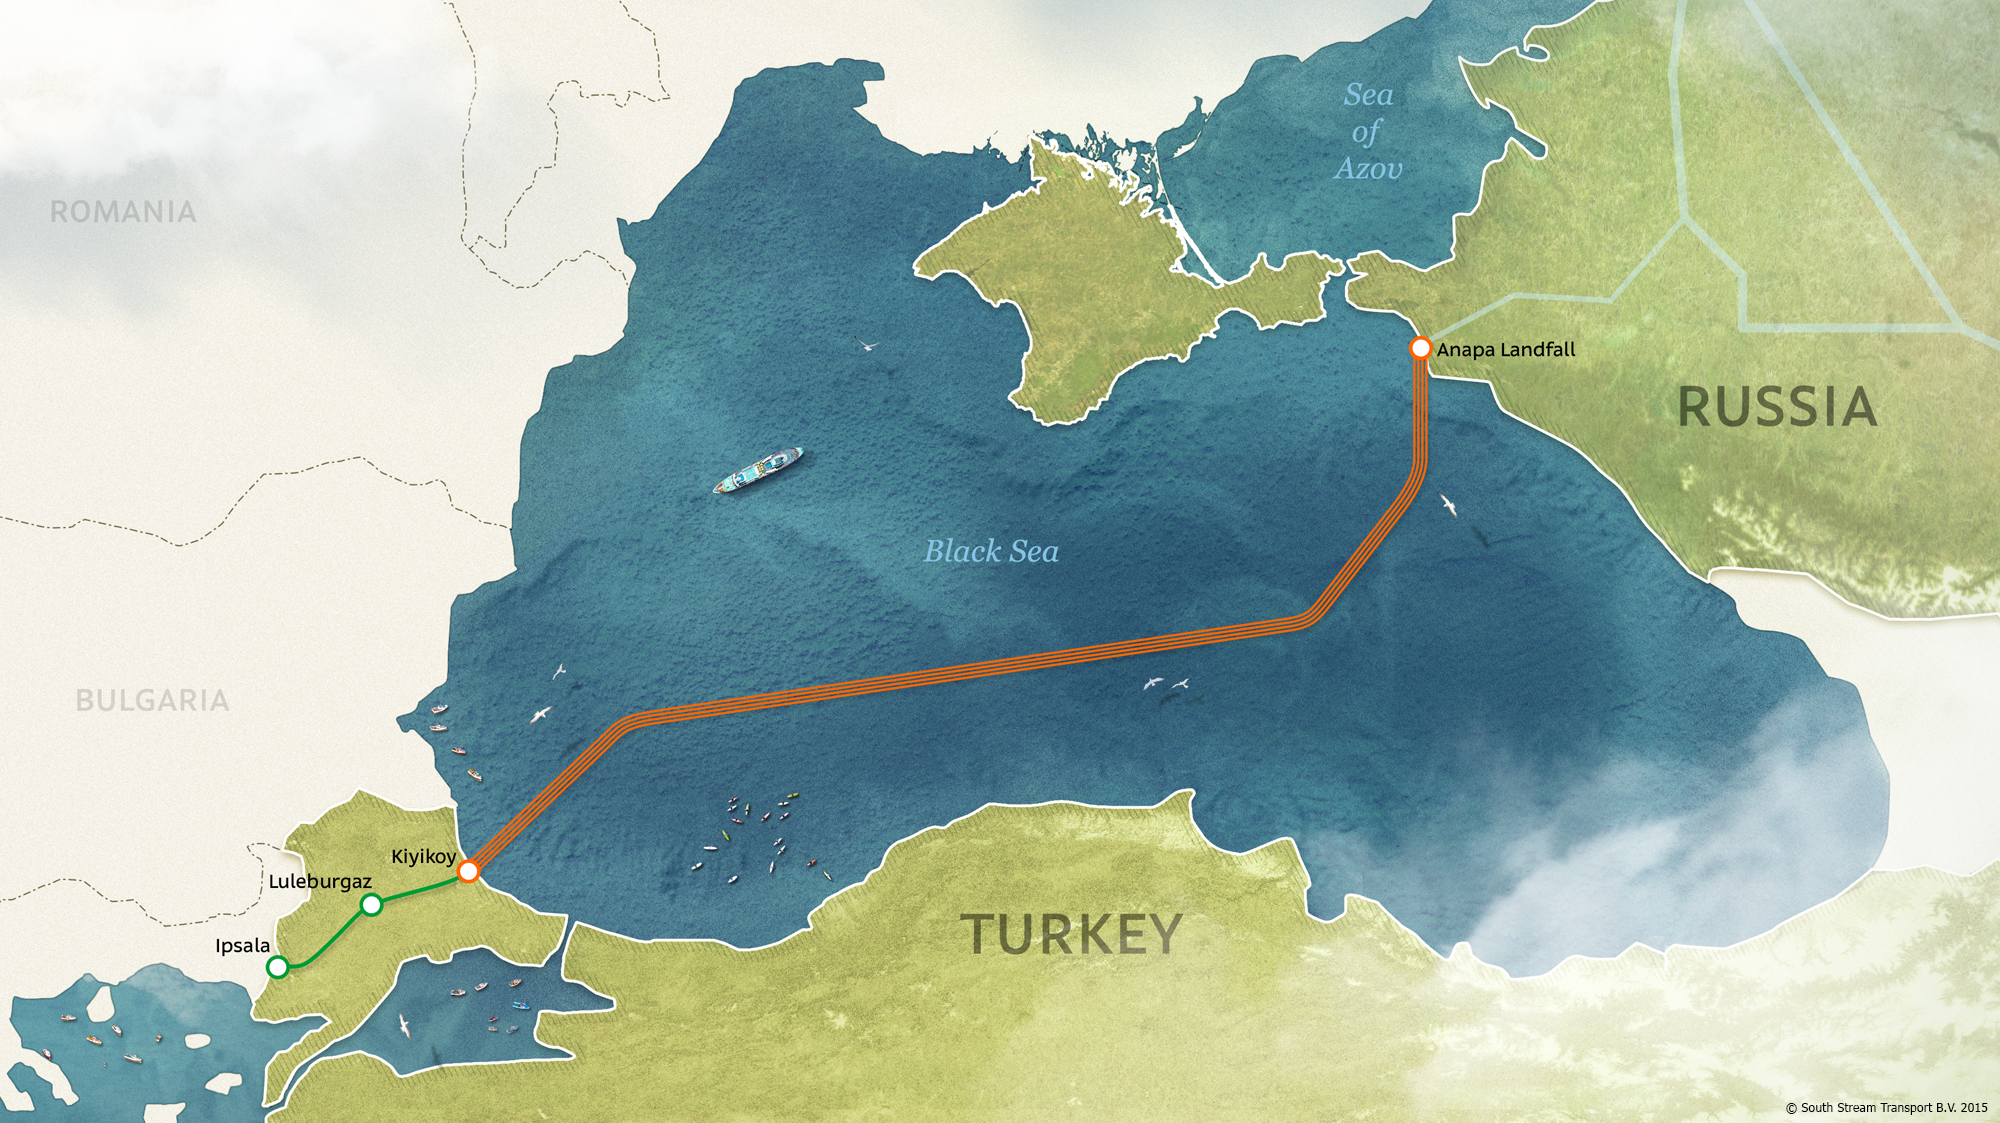 turkstream-offshore-pipeline-route_2655_20150724